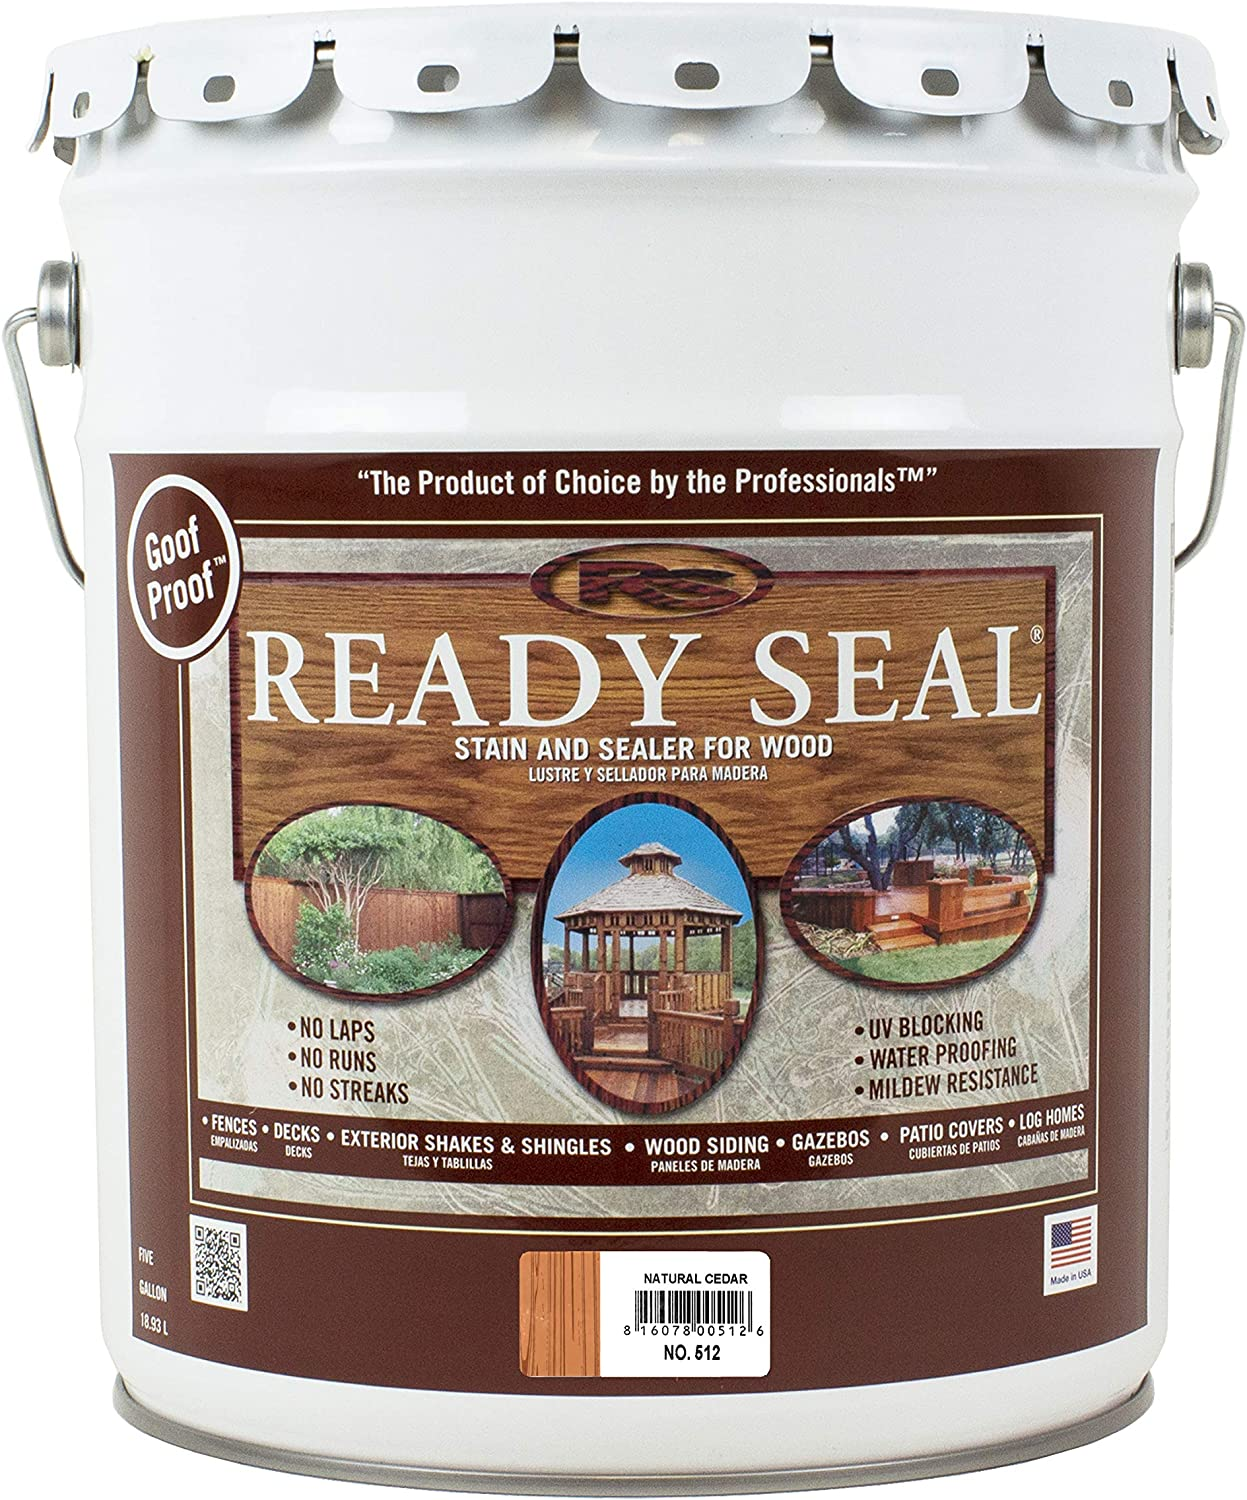 Ready Seal deck paint